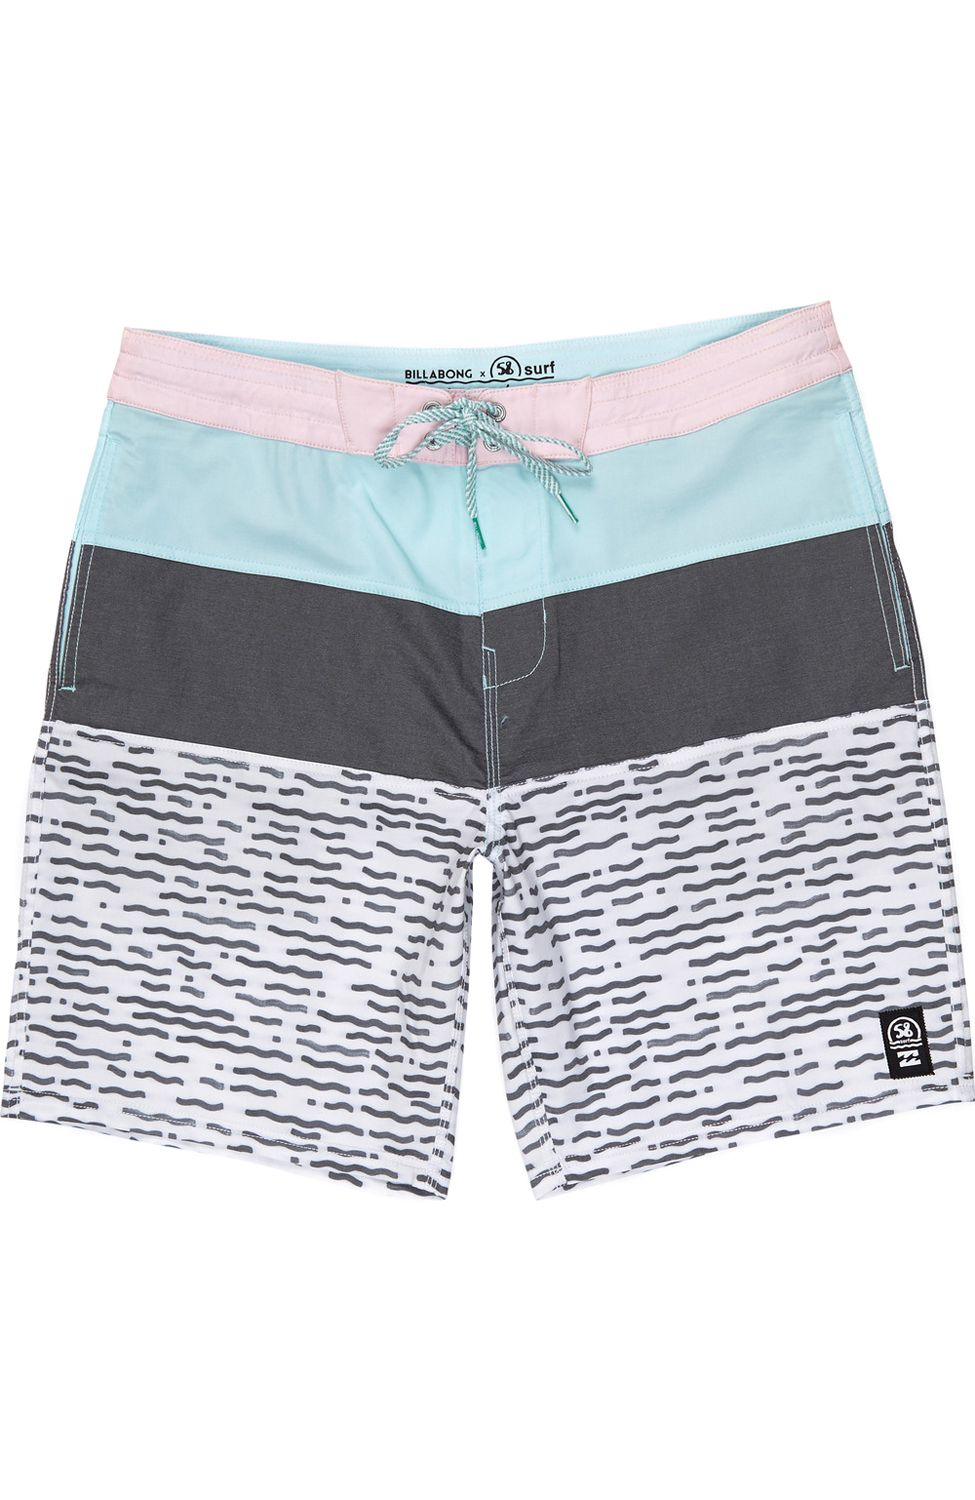 Boardshorts Billabong x 58 Surf TRIBONG RIPPLE LT 18 Black